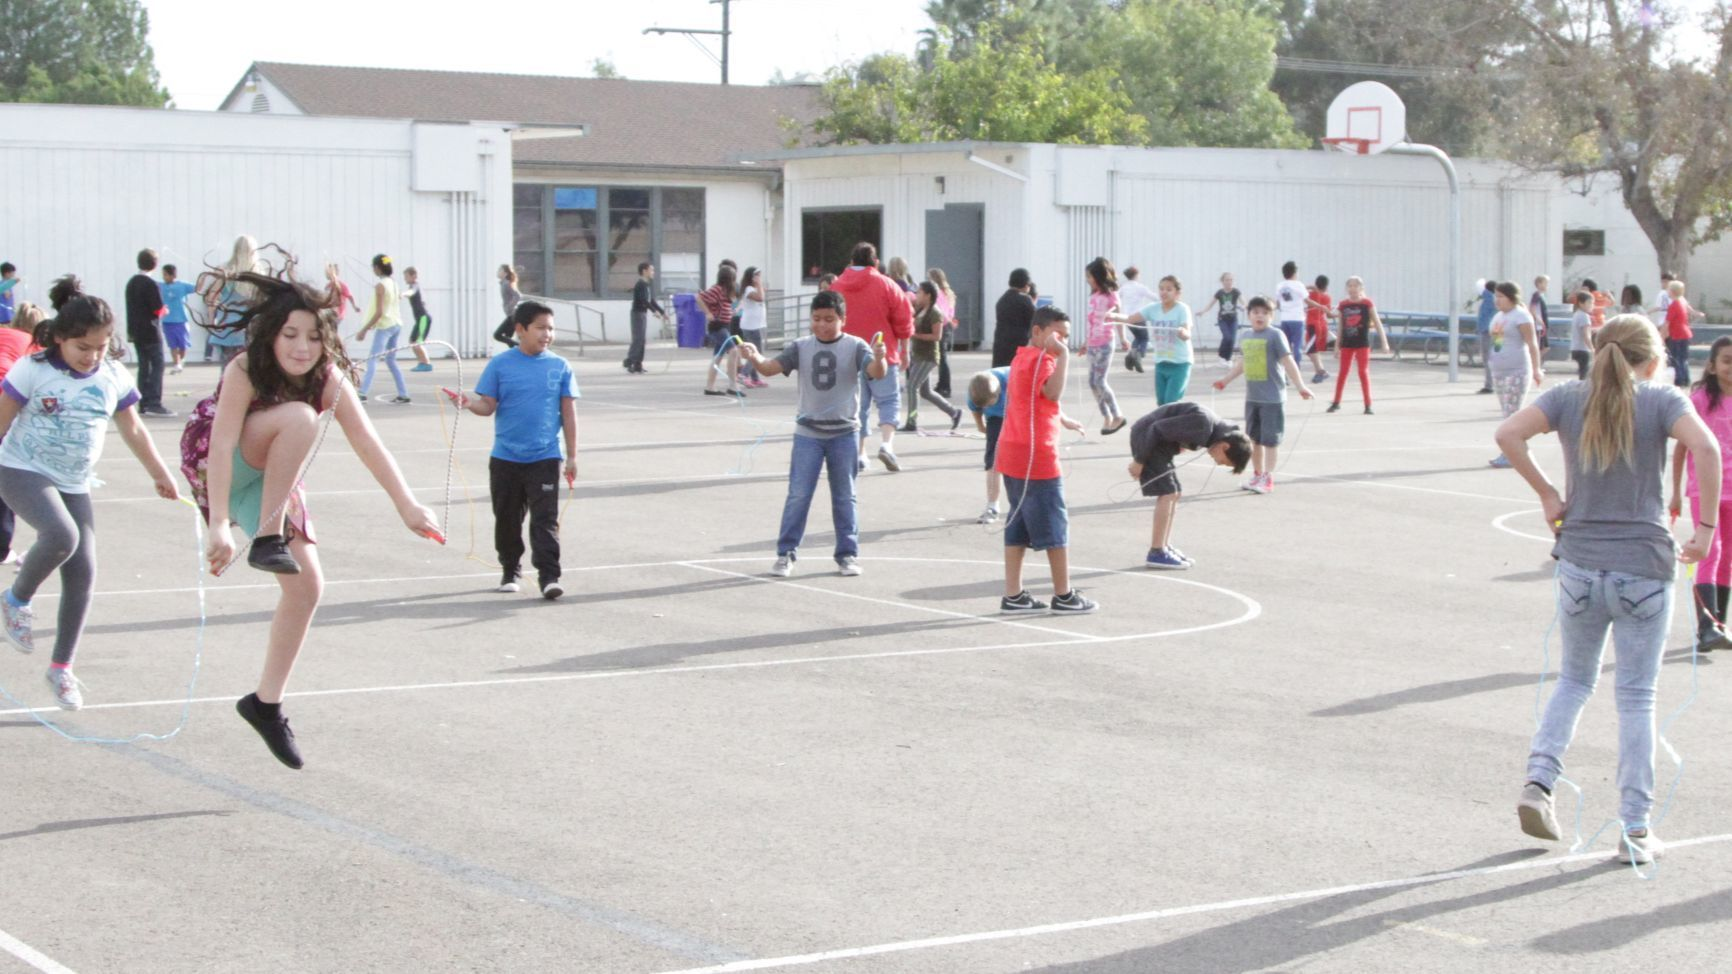 Ramona Elementary students exceed their fundraising goal in the Jump Rope for Heart event they held to honor the late Andy Diaz, campus supervisor who died of a heart attack in June.